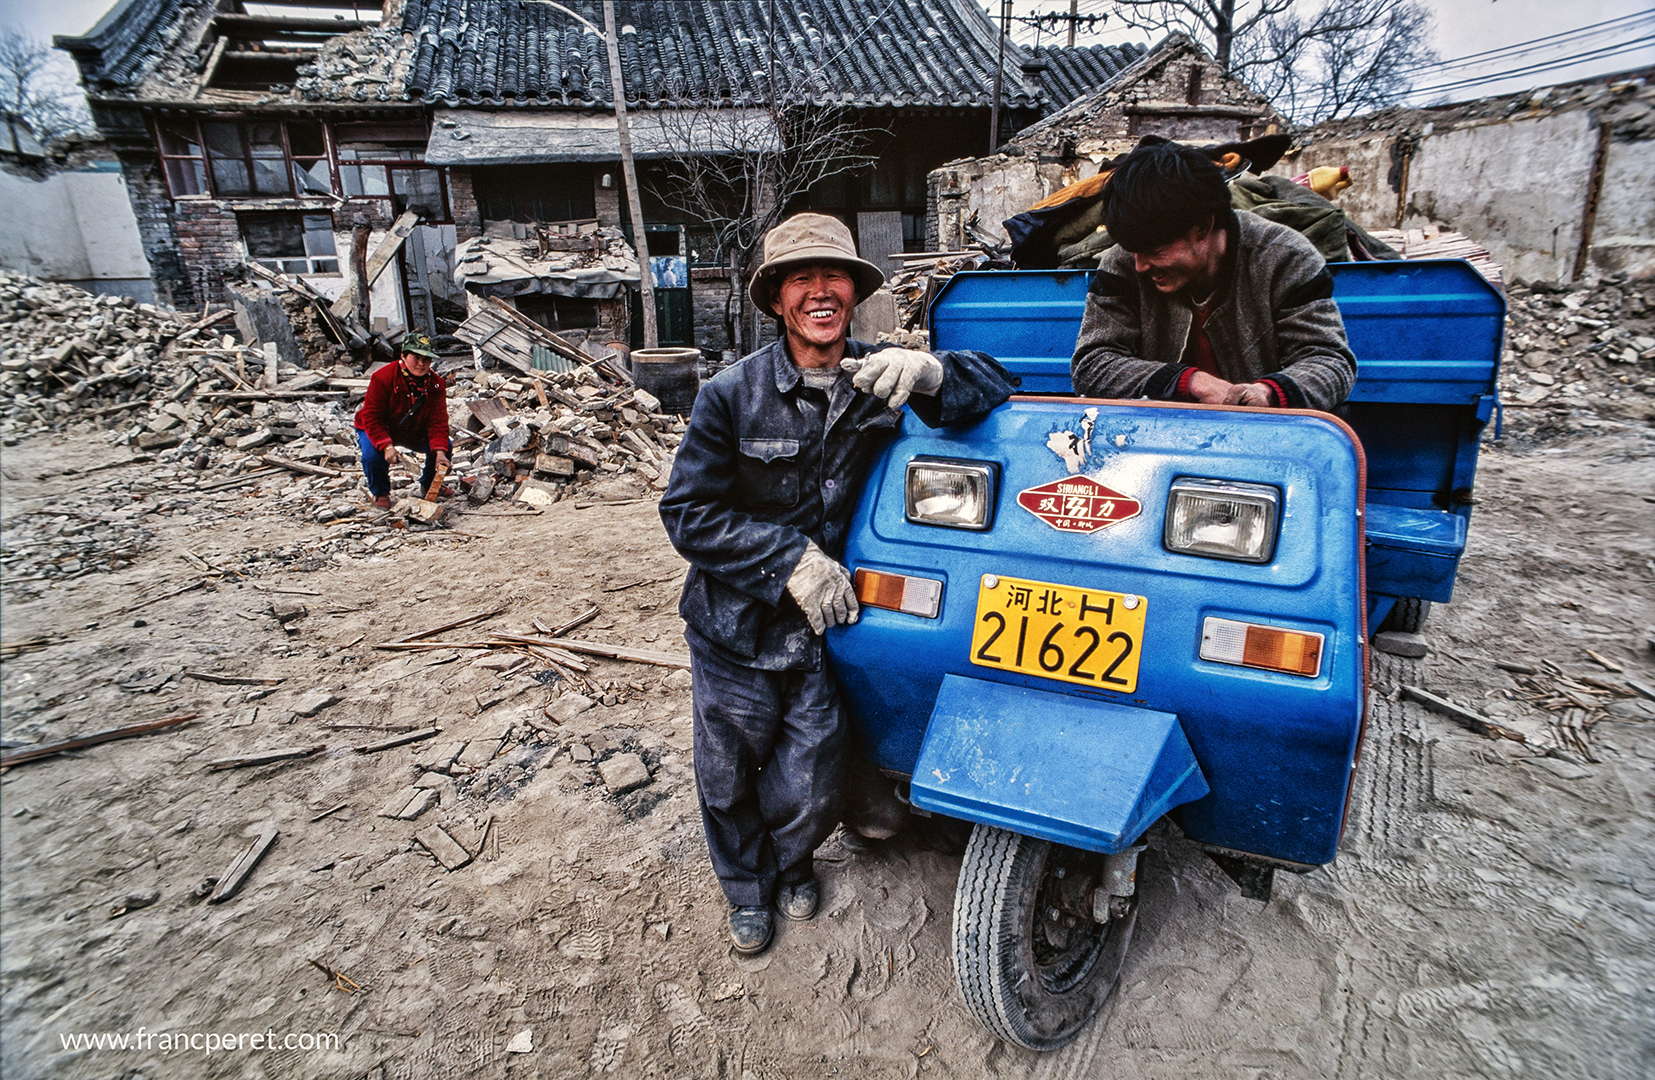 Chinese people have the logic of recycling from destruction. All bricks, tile, wood, doors and windows are carried away to villages in need of construction material.